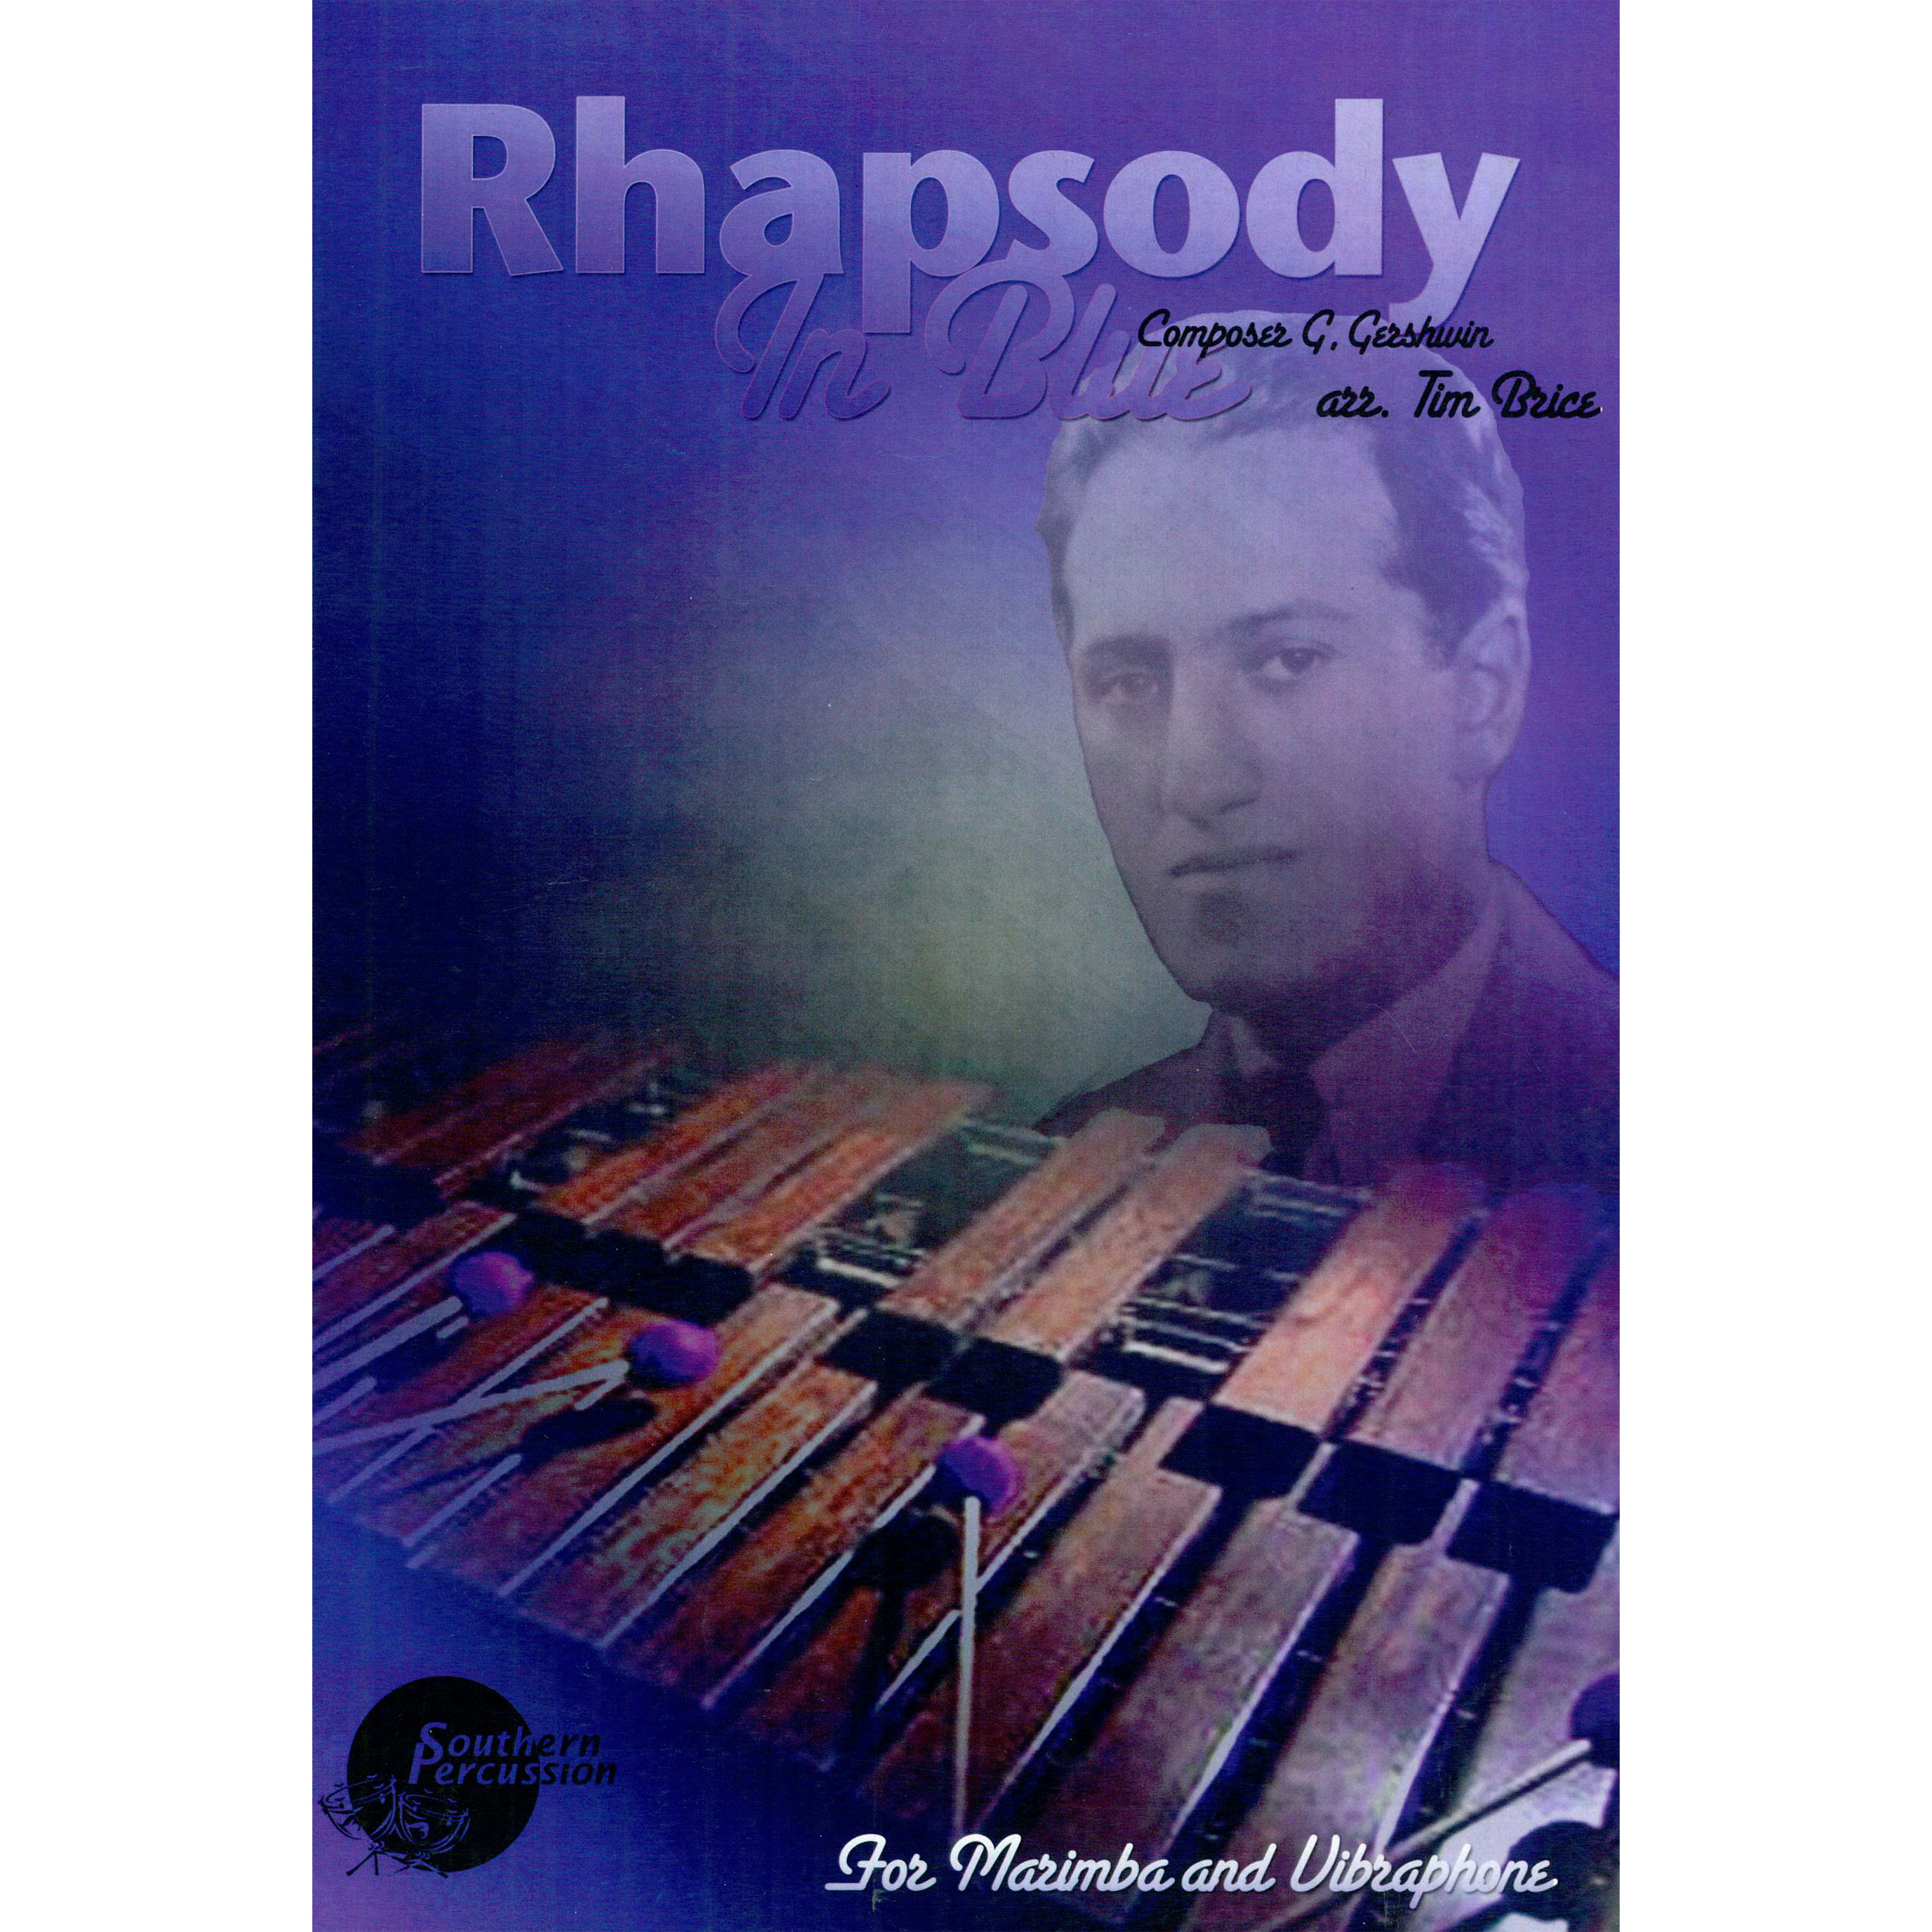 Rhapsody in Blue by George Gershwin arr. Tim Brice